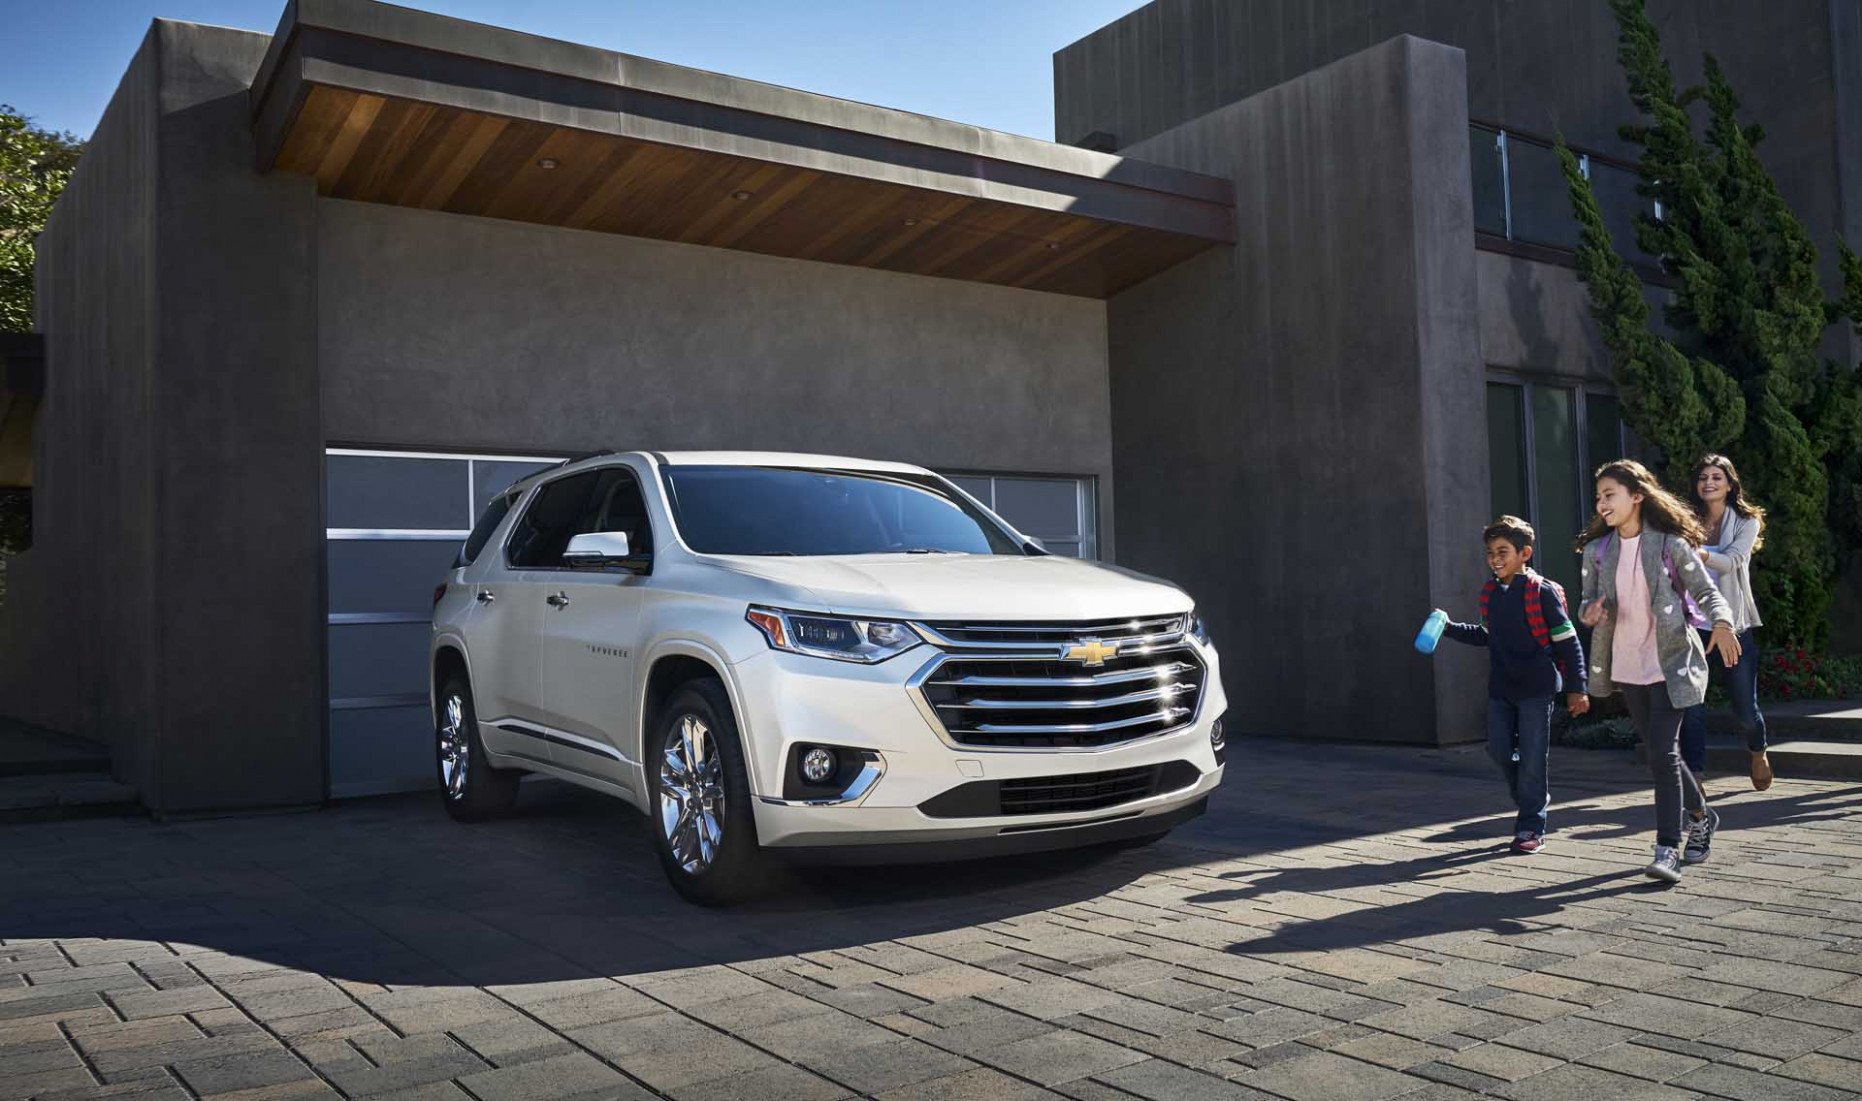 6 Chevrolet Traverse (Chevy) Review, Ratings, Specs, Prices ..